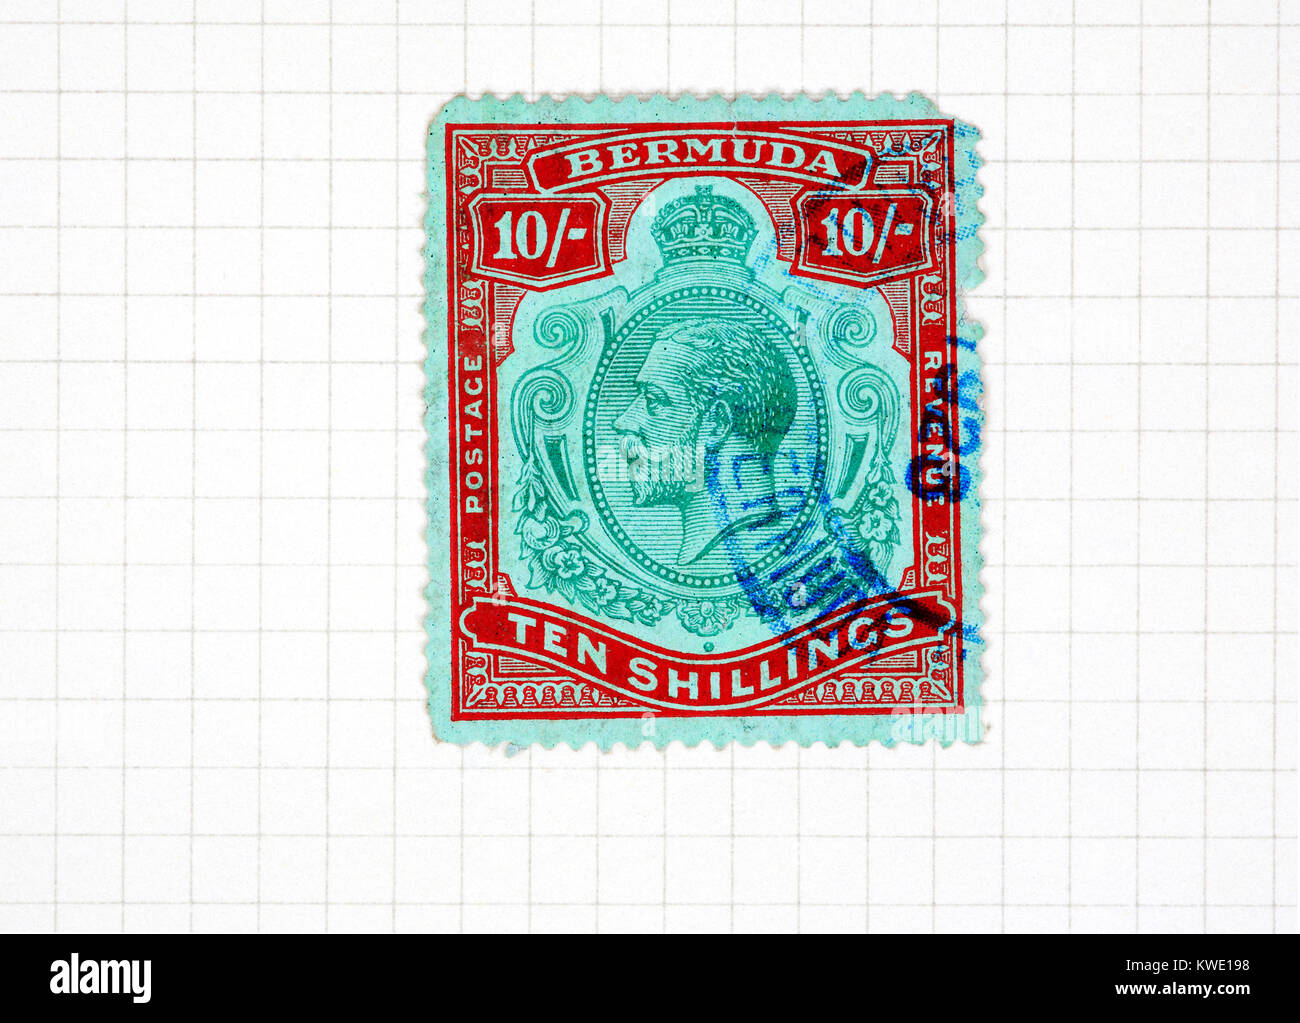 A King George V reign Bermuda Ten Shillings used stamp from a stamp collection album page. - Stock Image